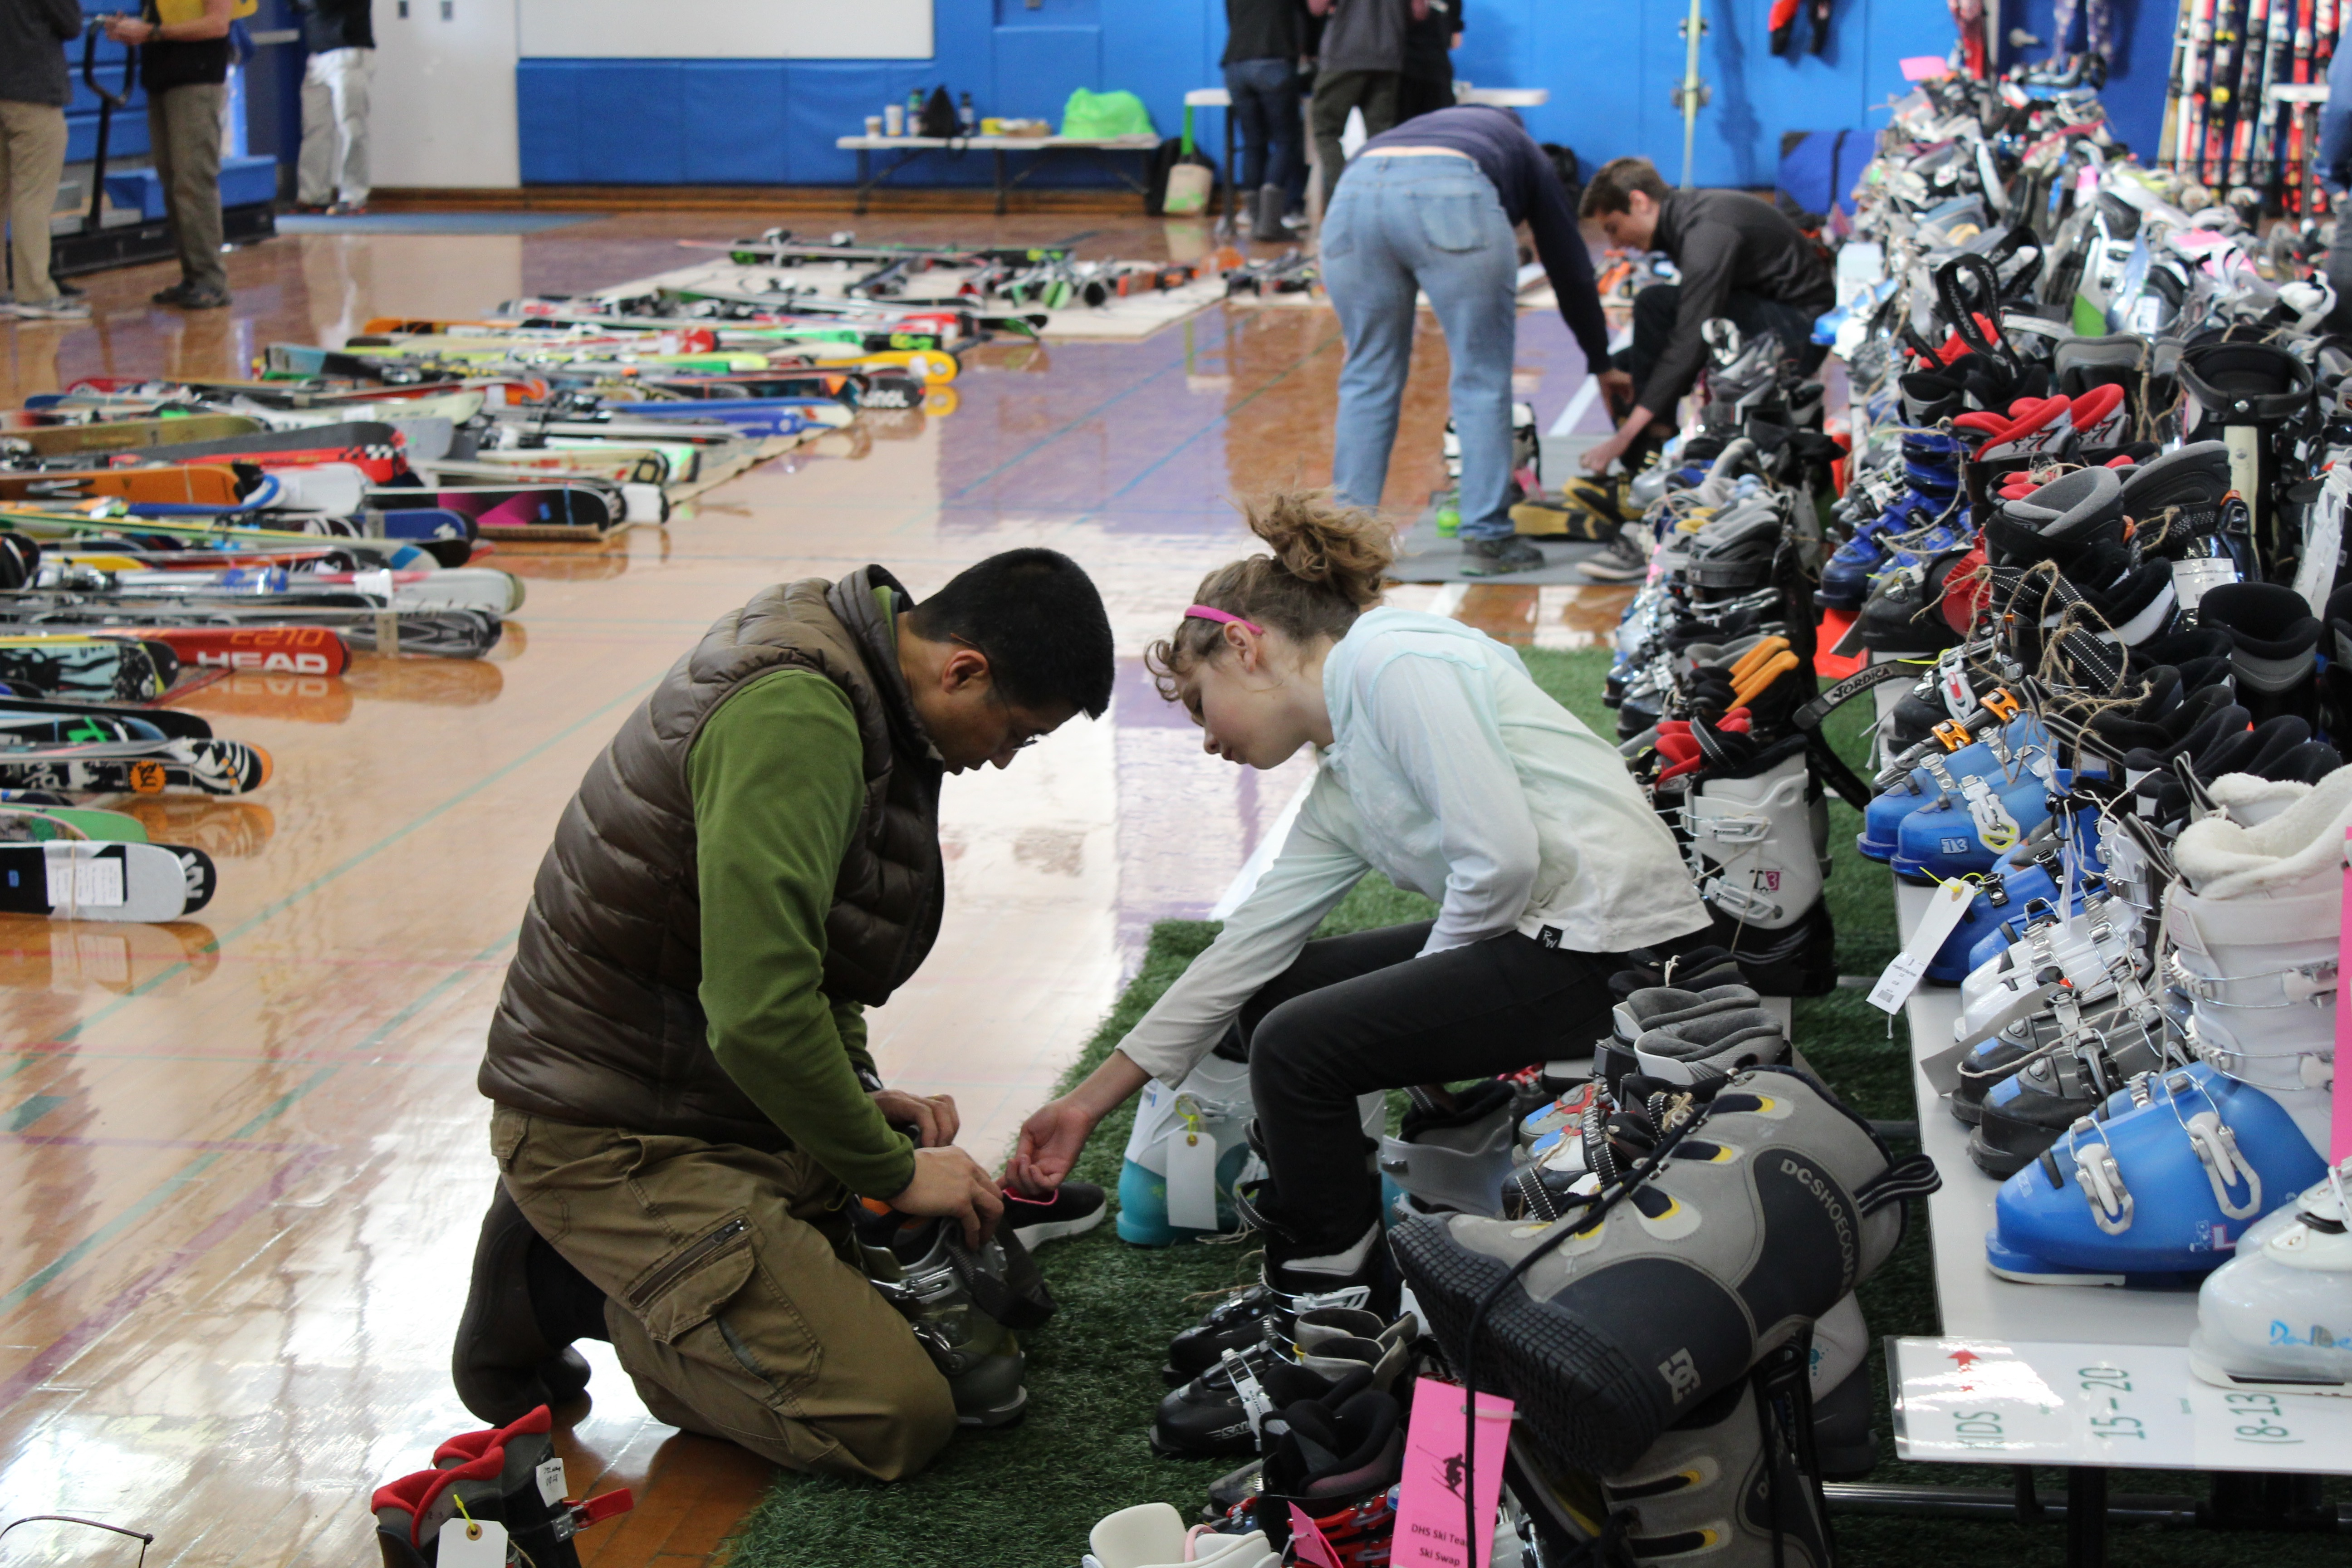 Volunteer parents help out customers with trying on boots and skis.